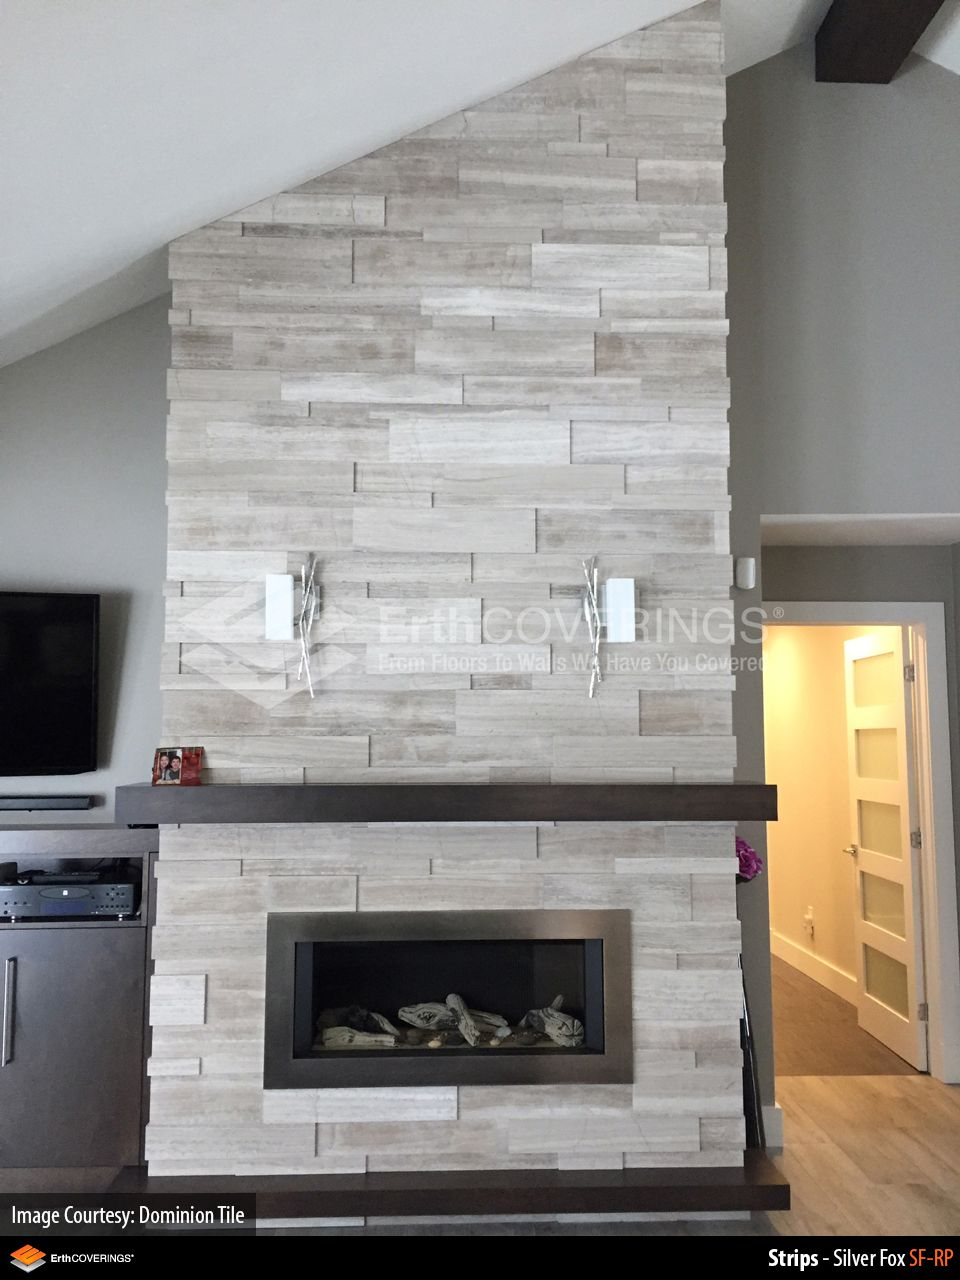 Installation Photos Of Erthcoverings Strips Series Natural Stone